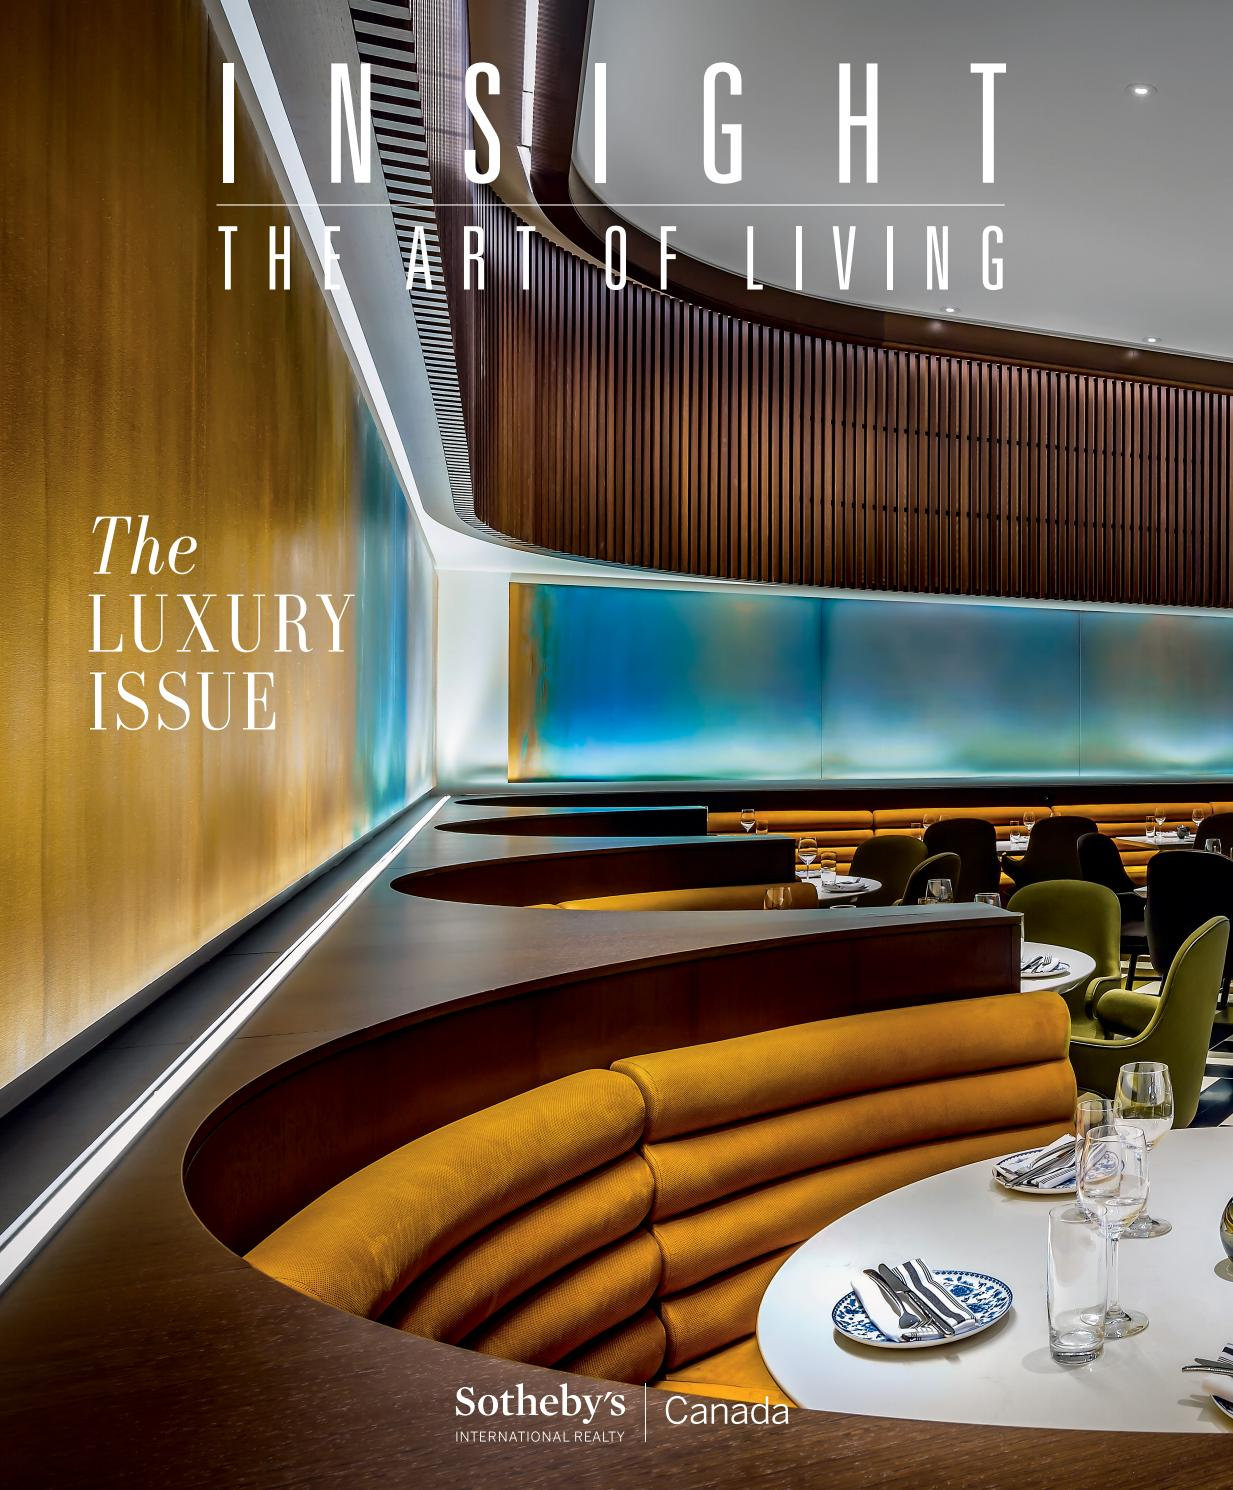 Insight The Art Of Living Fall 2019 By Sotheby S International Realty Canada Issuu